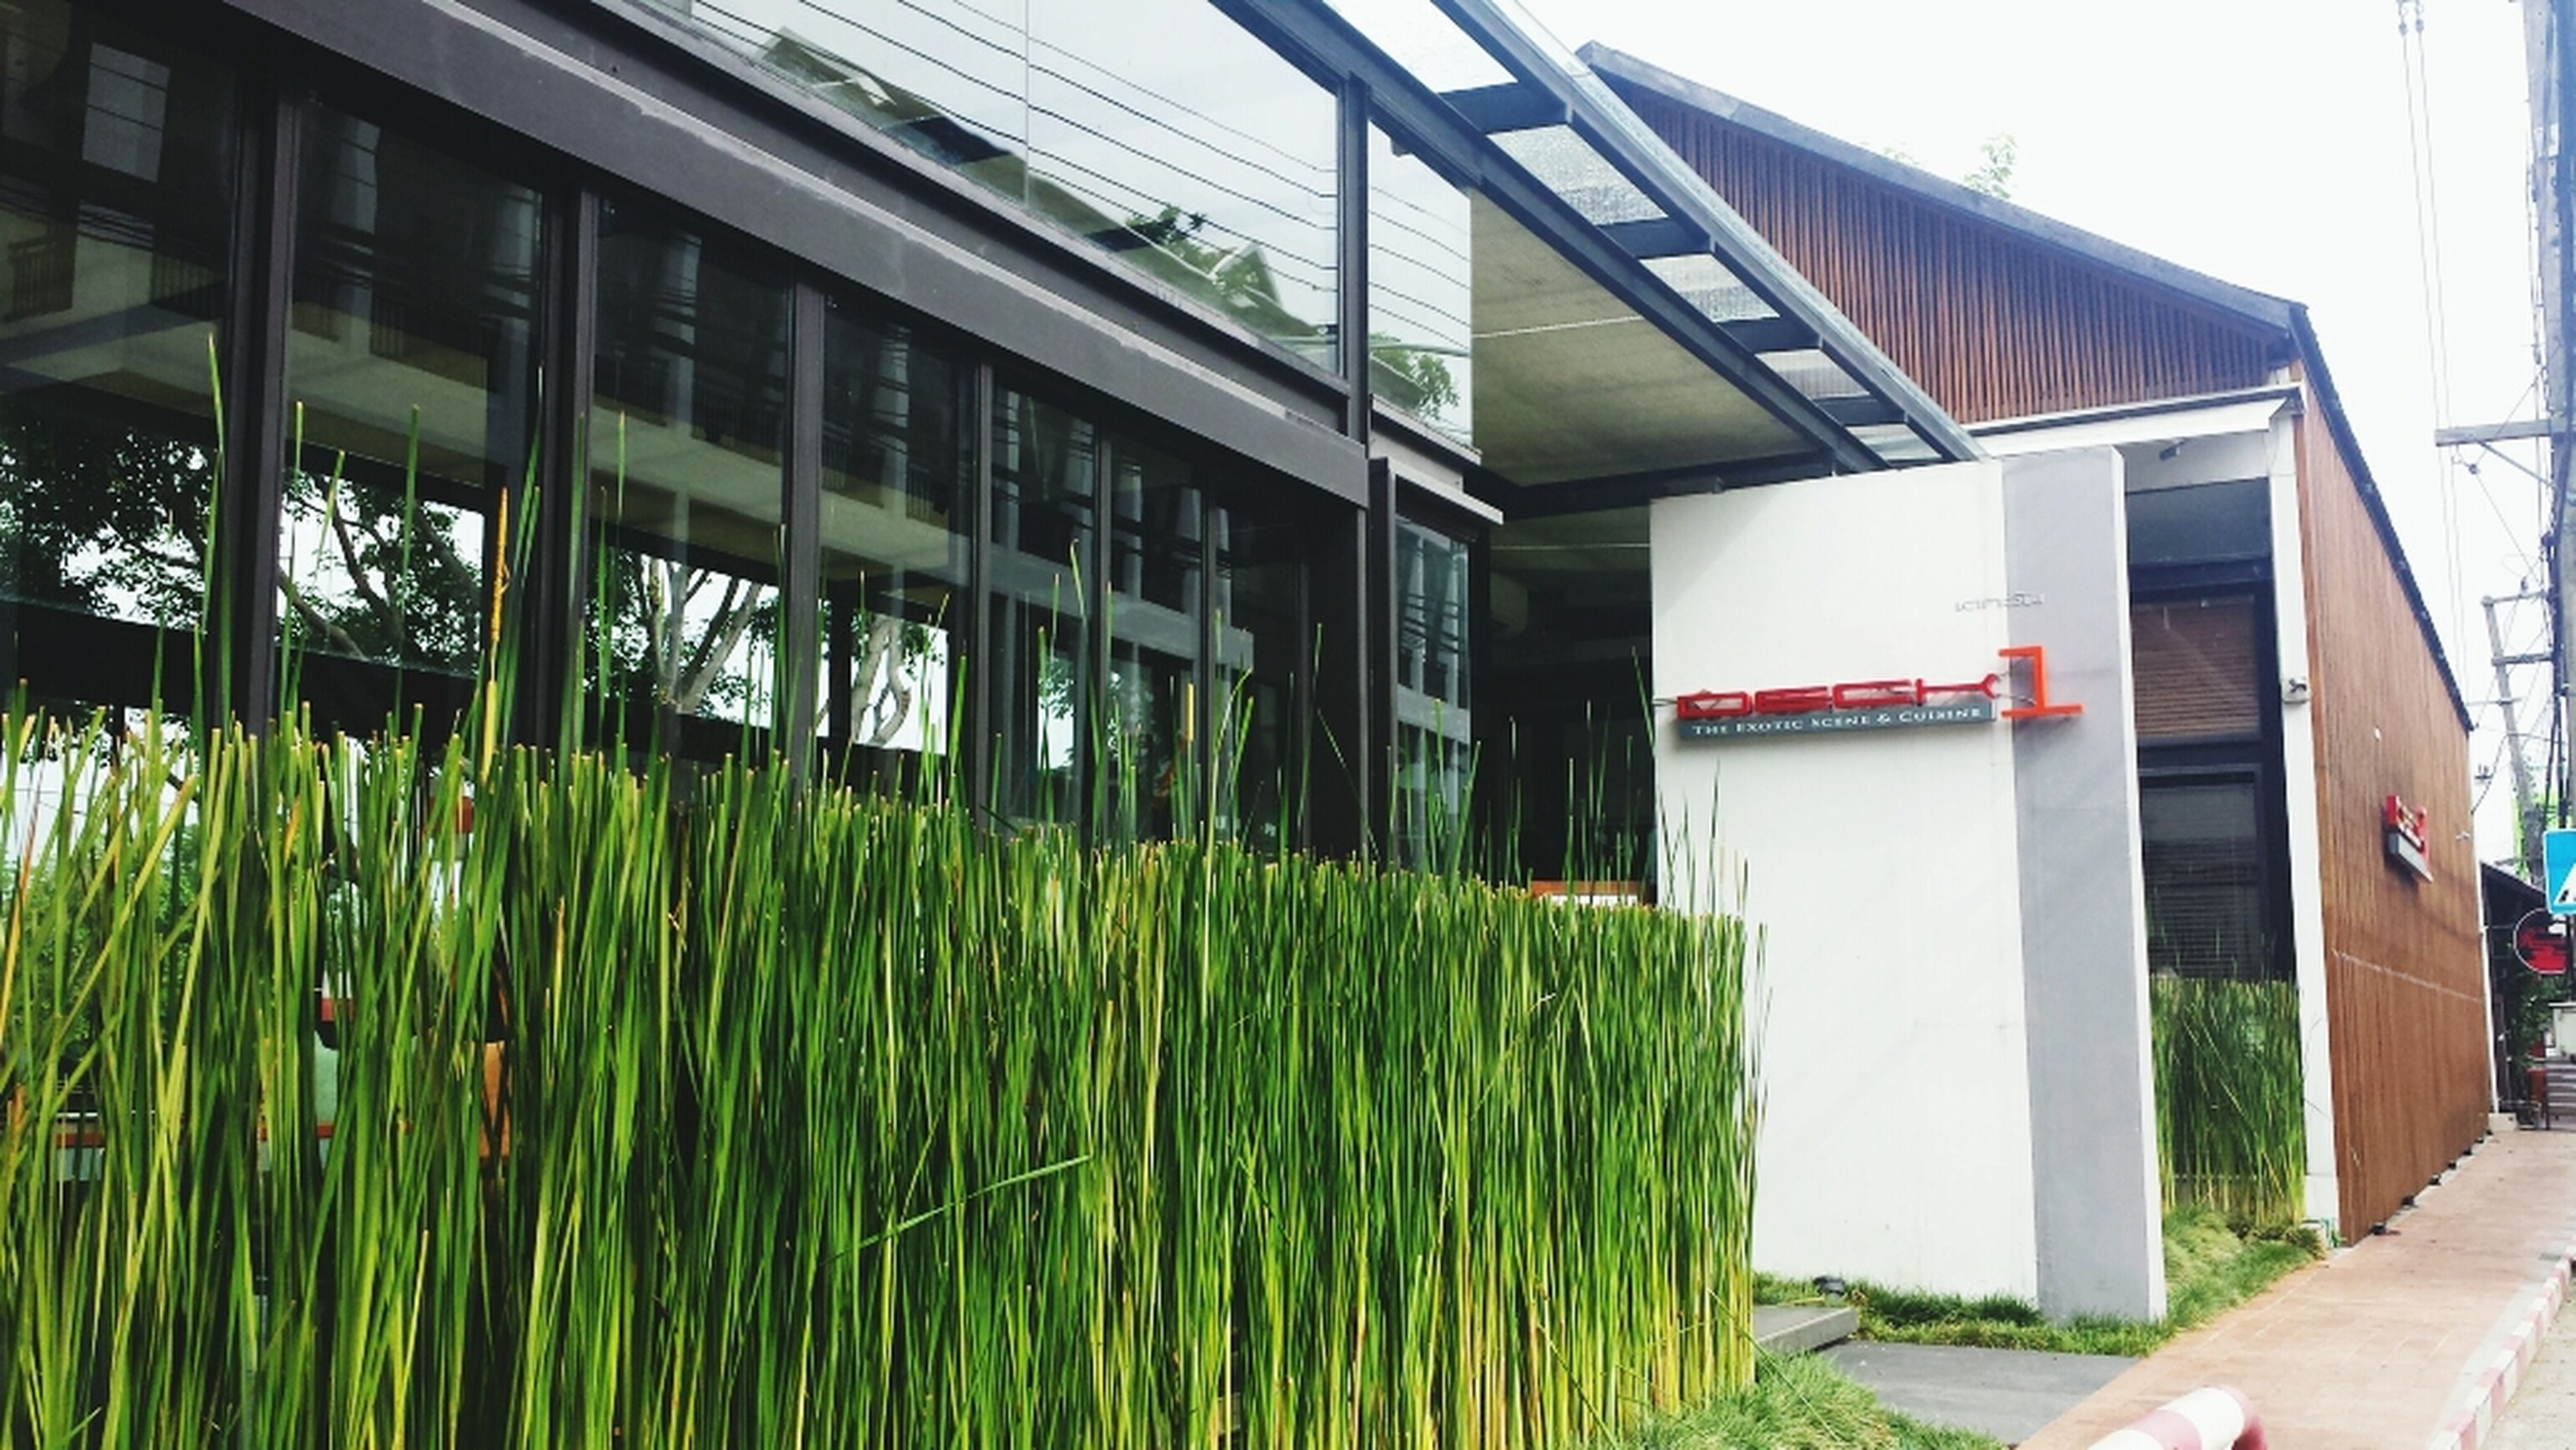 building exterior, architecture, built structure, green color, grass, window, plant, house, growth, day, in a row, outdoors, no people, sky, building, green, wood - material, sunlight, residential structure, residential building